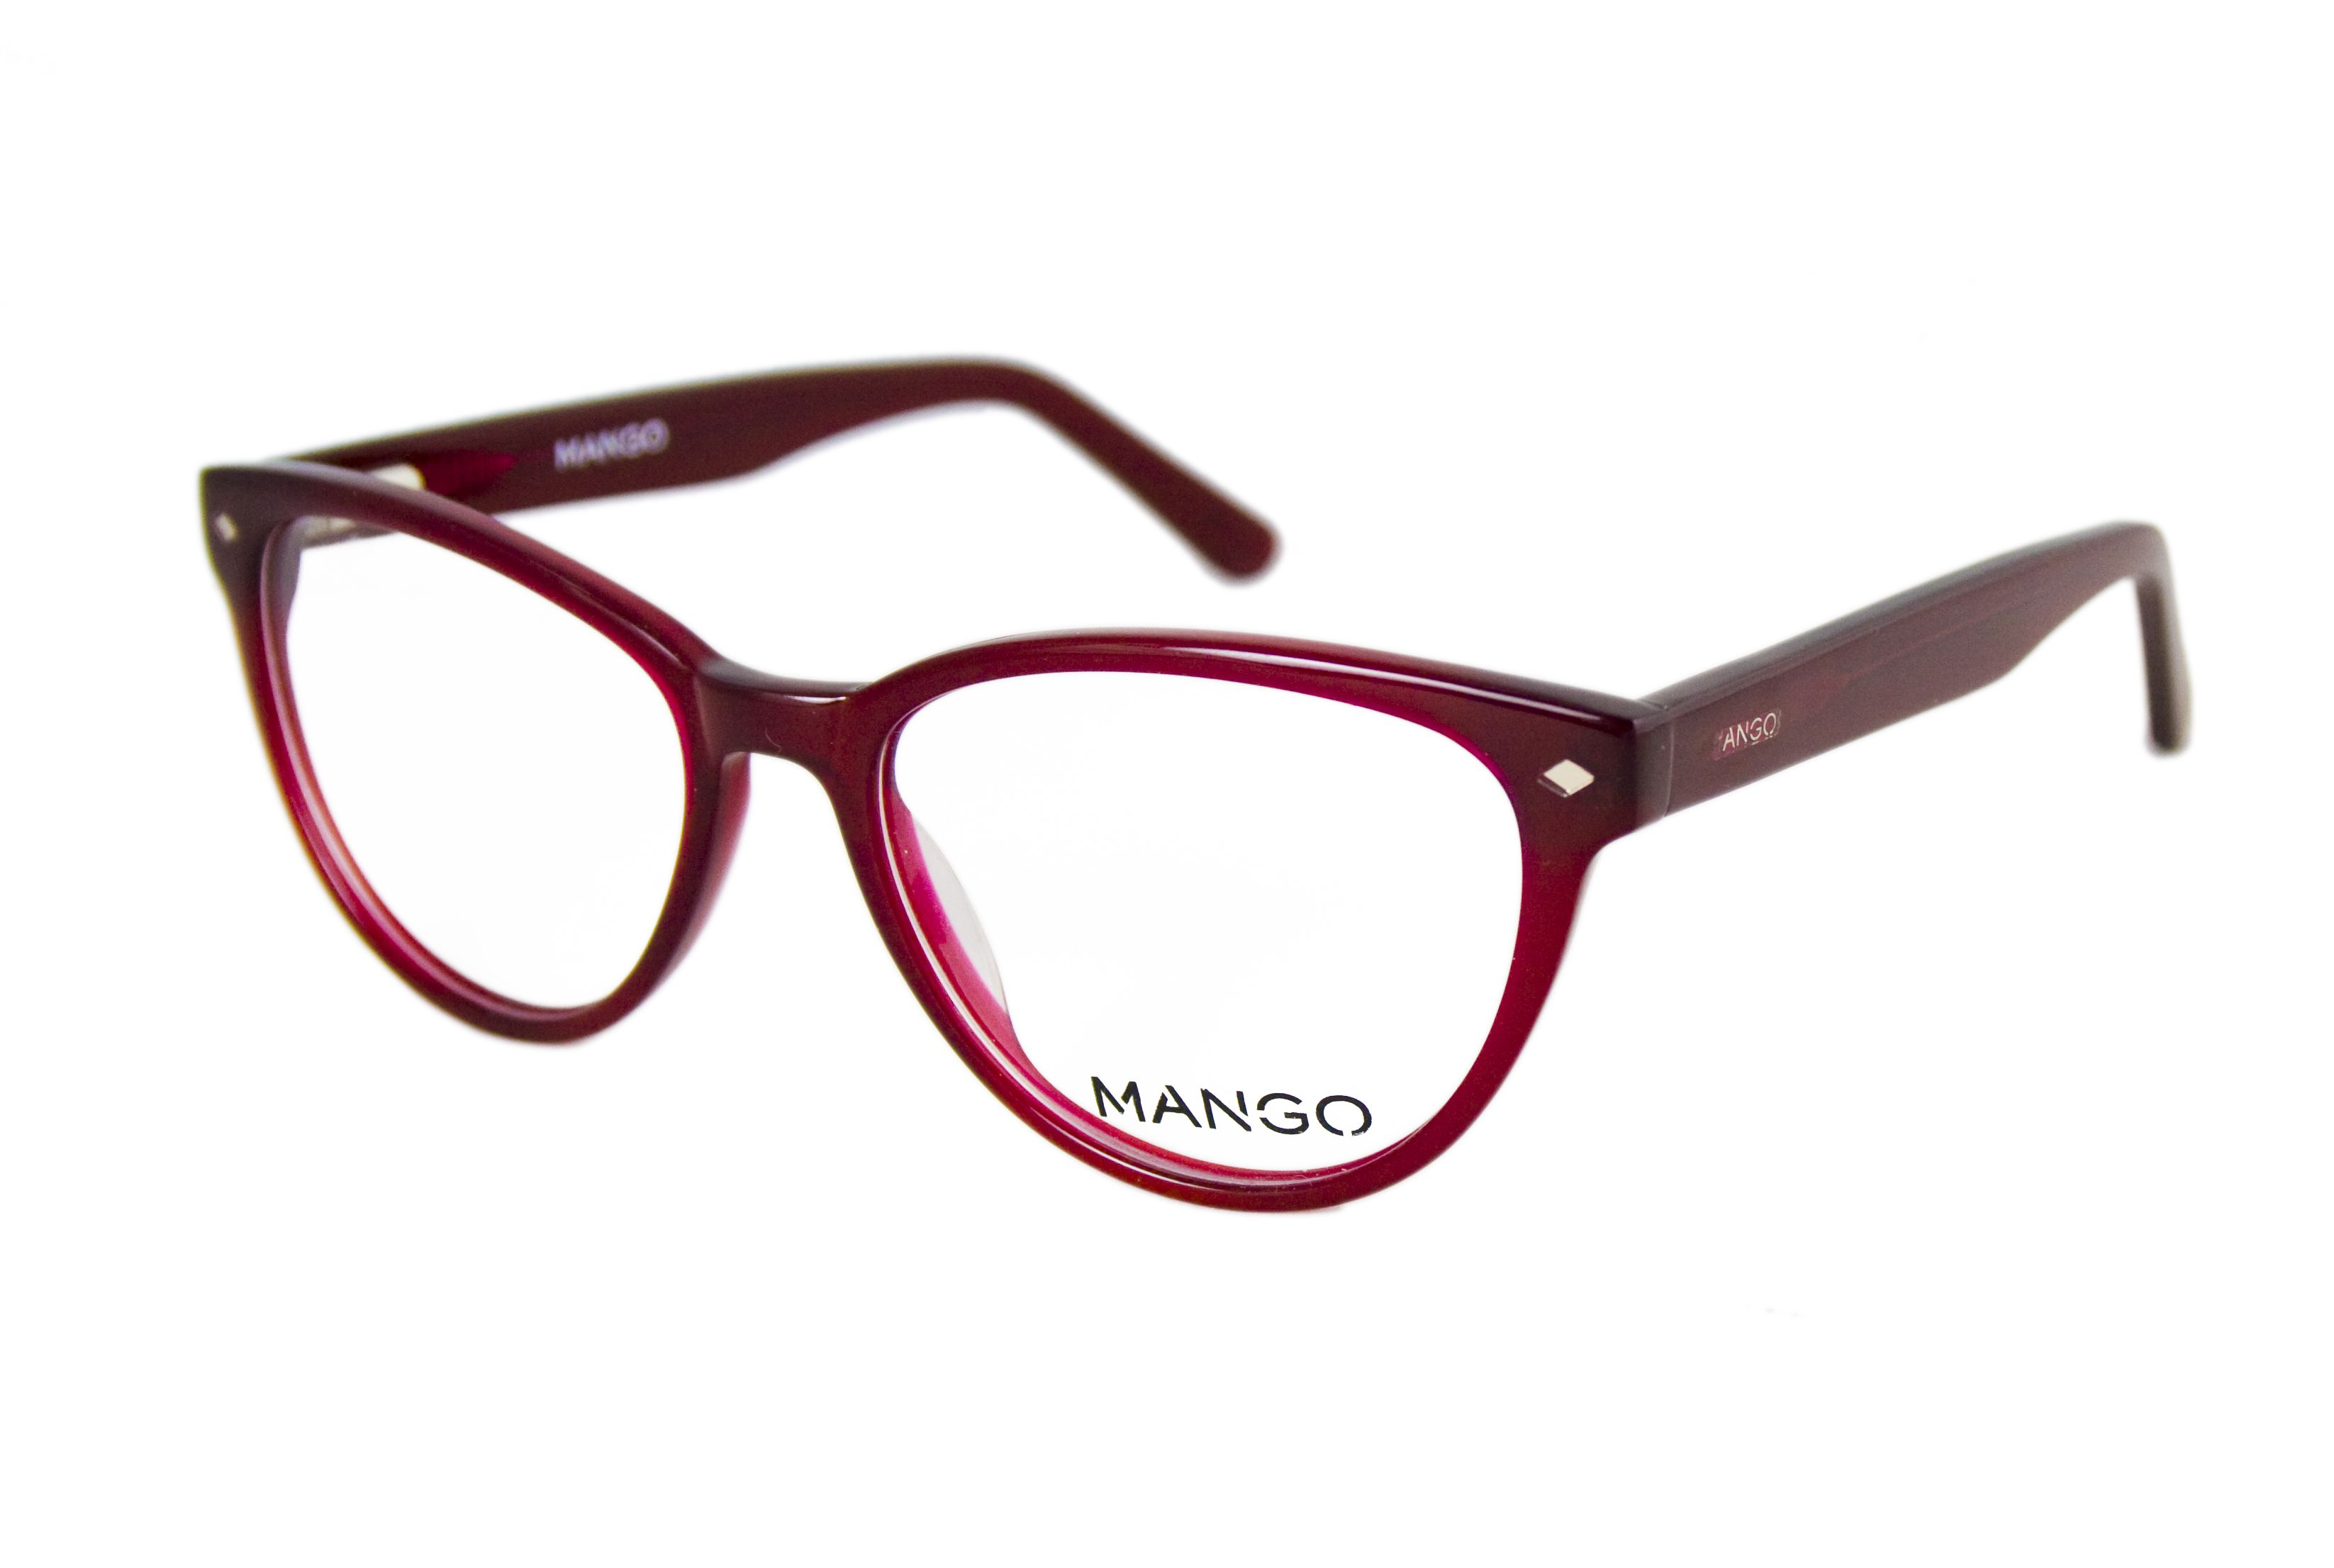 17c85425ce Gafas #Mango by #Opticalia | Gafas | Glasses, Fashion Accessories ...